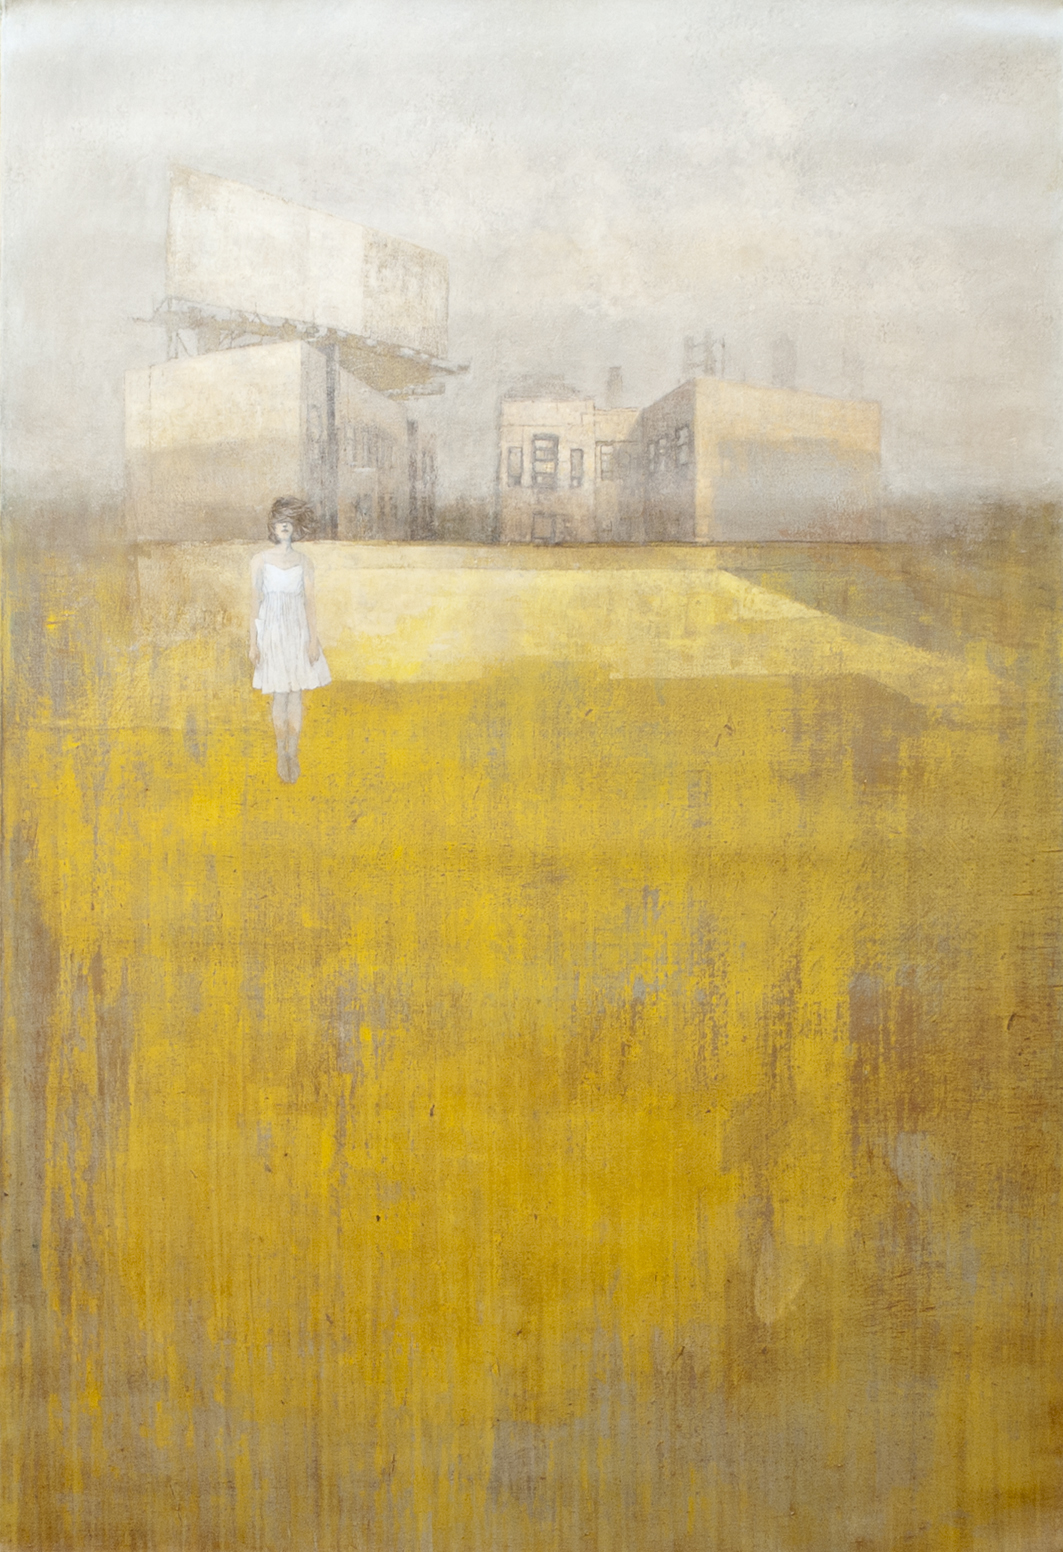 Federico infante chilean landscapes everythingwithatwist